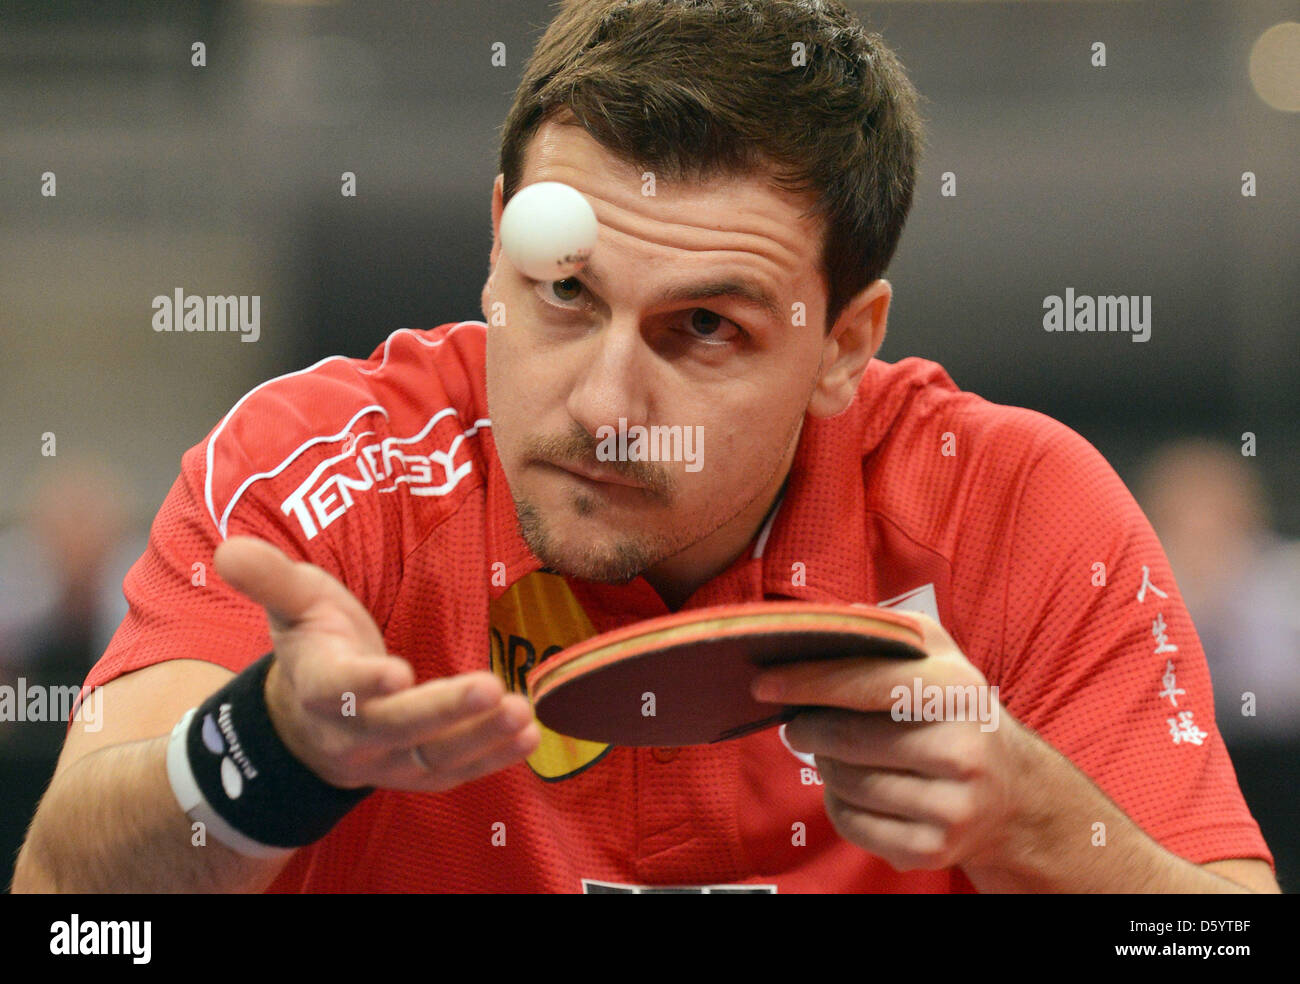 Joueur de tennis de table allemand Timo Boll sert la balle lors d'un match contre Yoshimura du Japon à Photo Stock